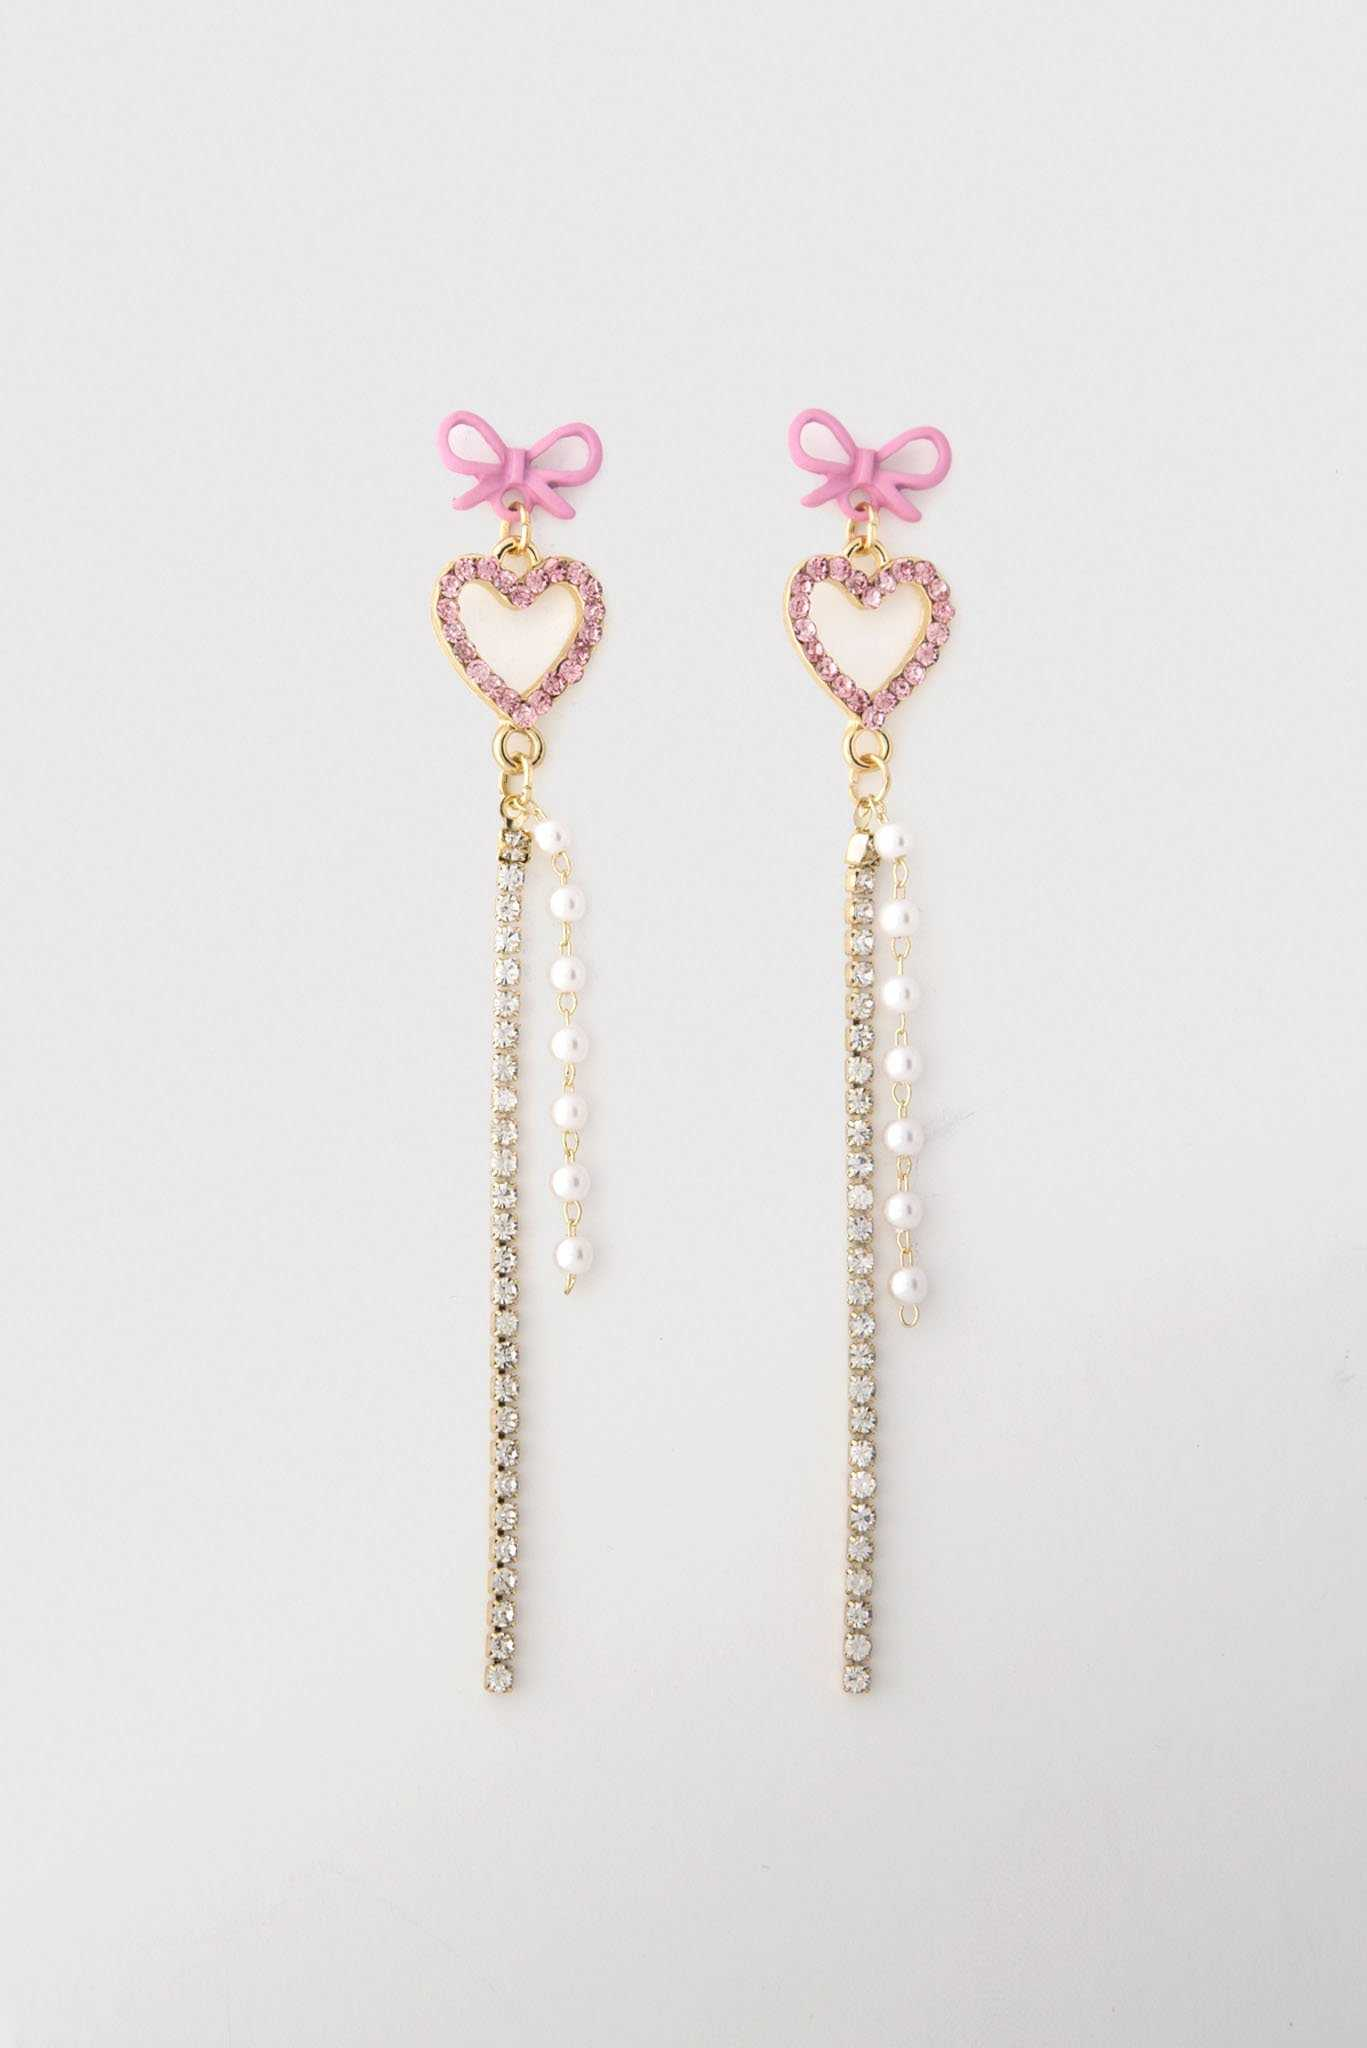 Heart Drop Chain - Pink and Gold | Raw Orange